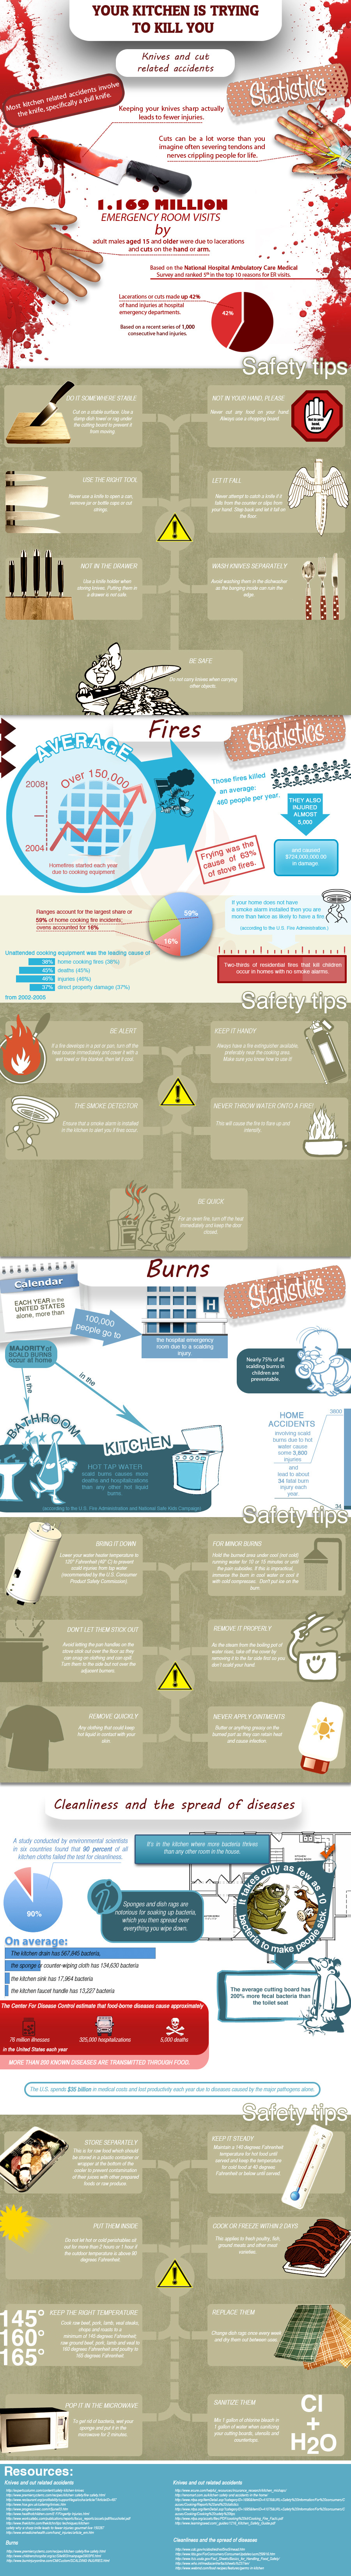 Your Kitchen is Trying to Kill You:  Tips for staying safe in the kitchen (Infographic)